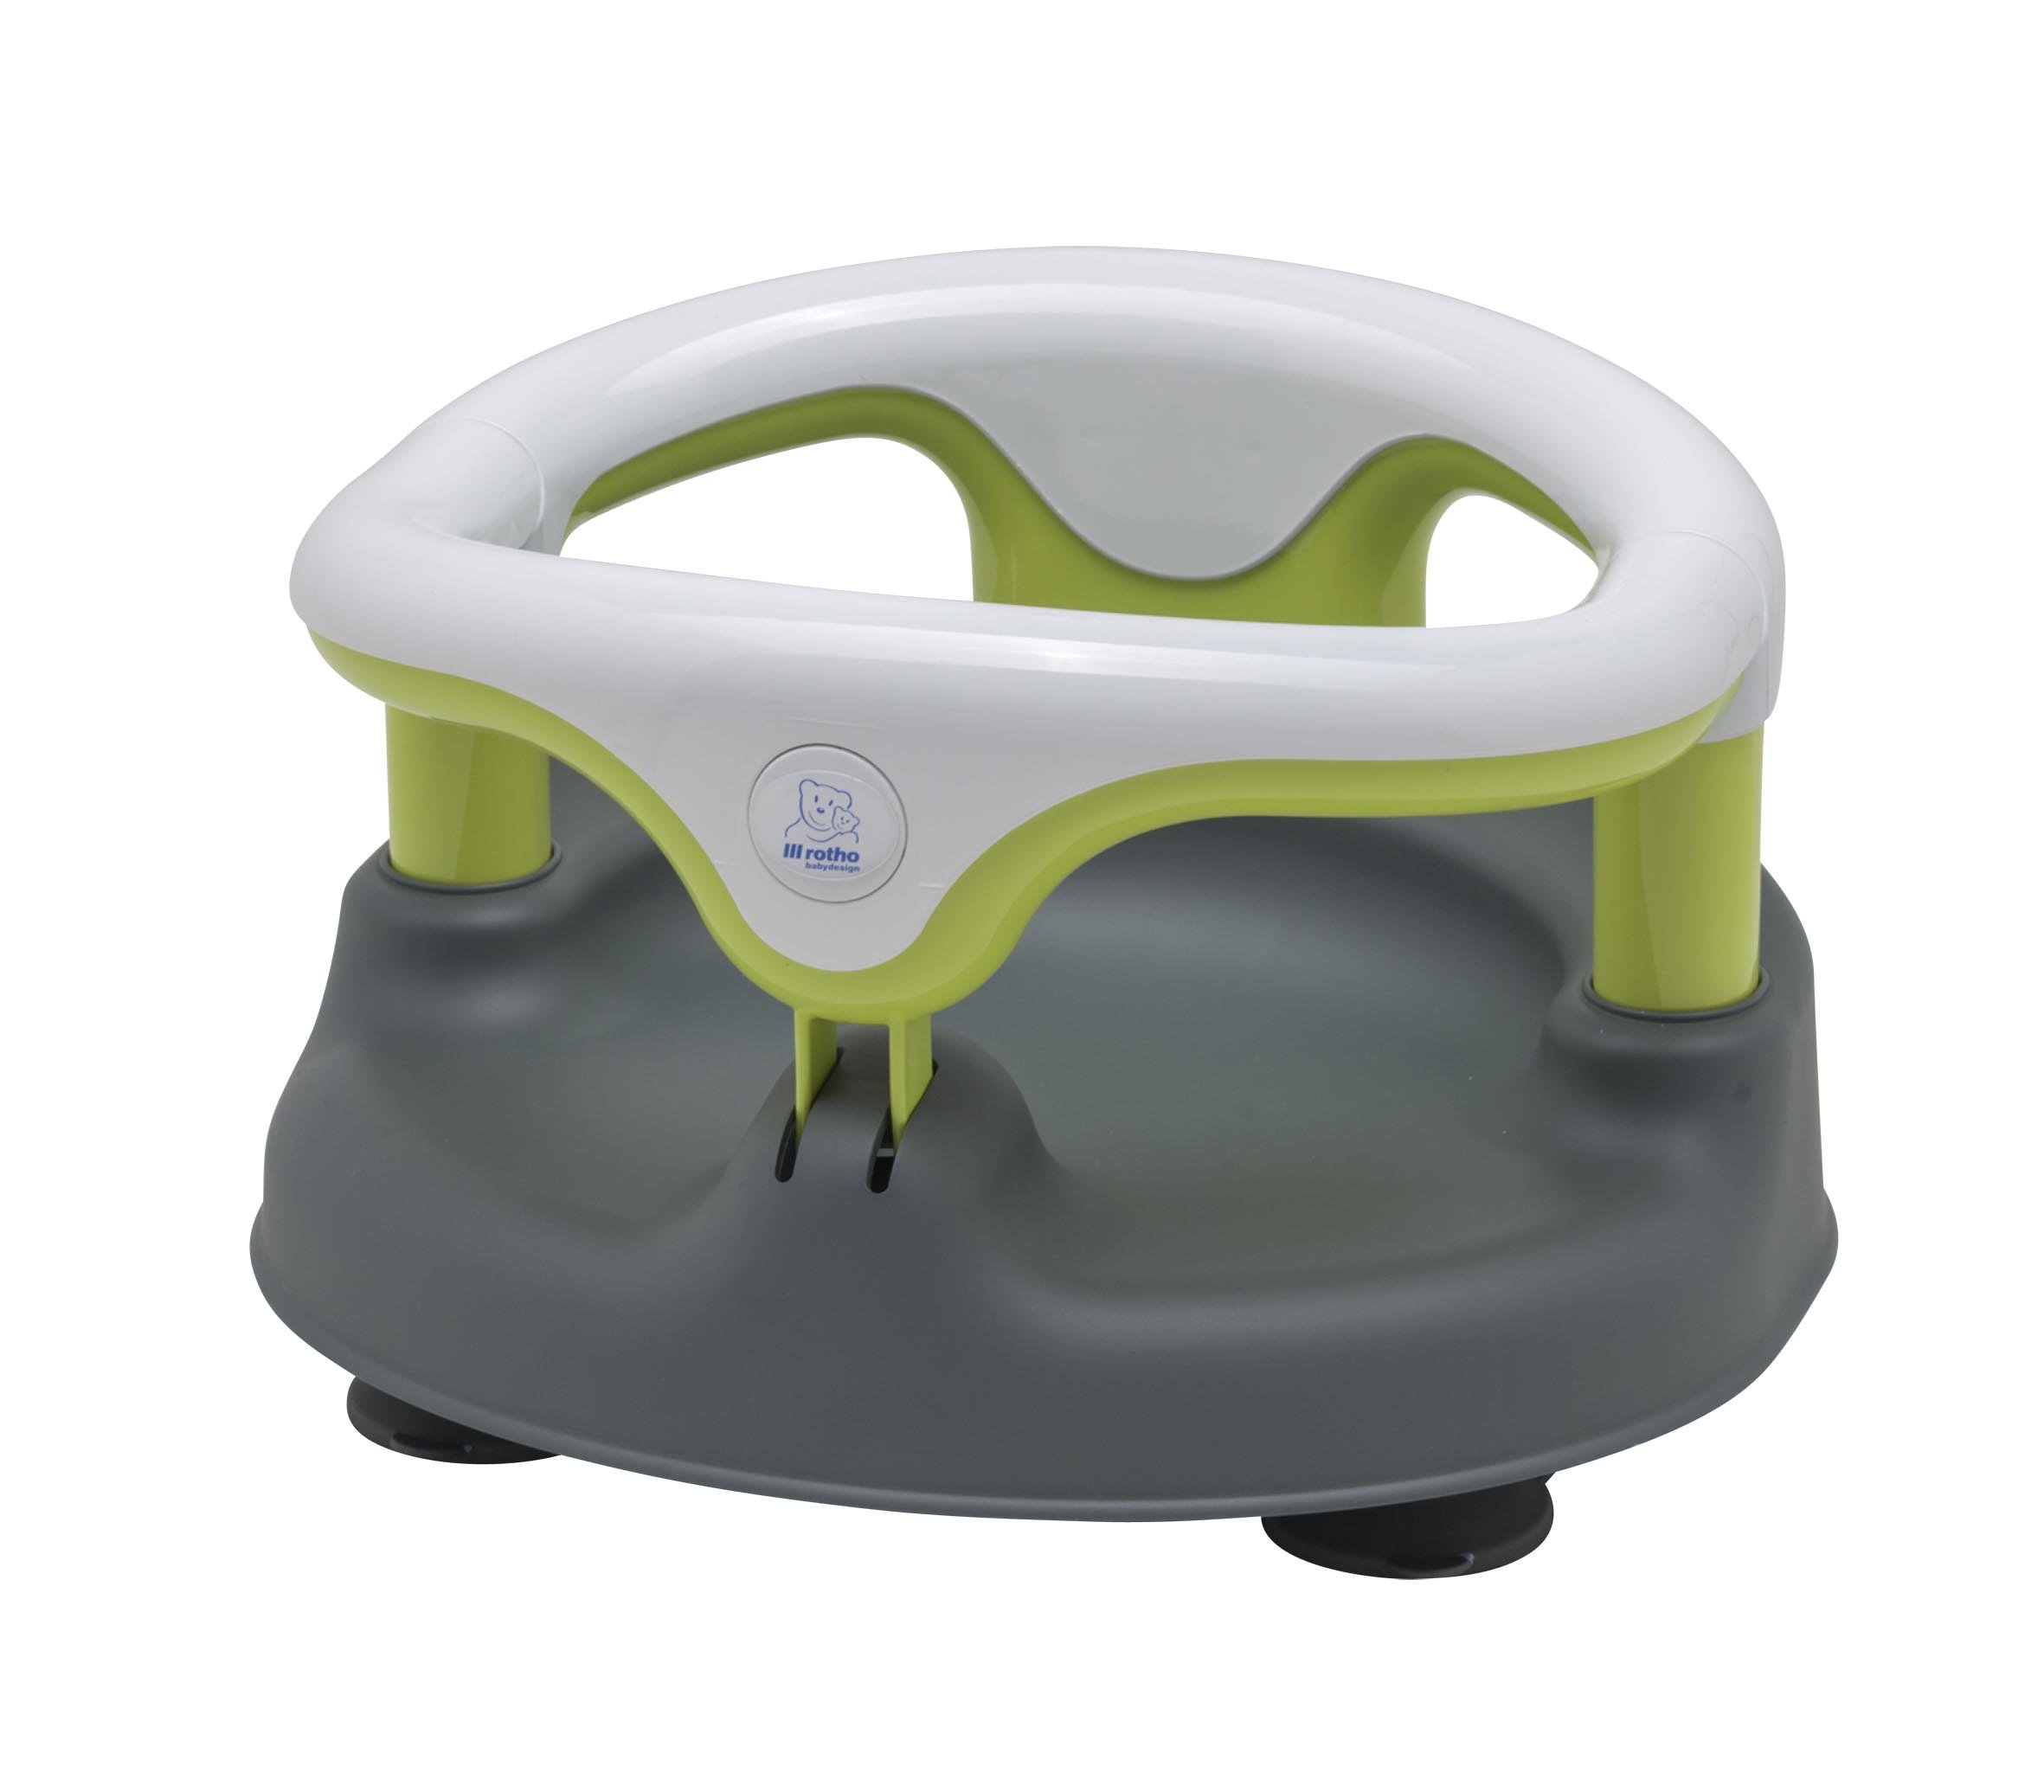 Rotho Babydesign Baby Bath Seat, Grey/White/Apple Green